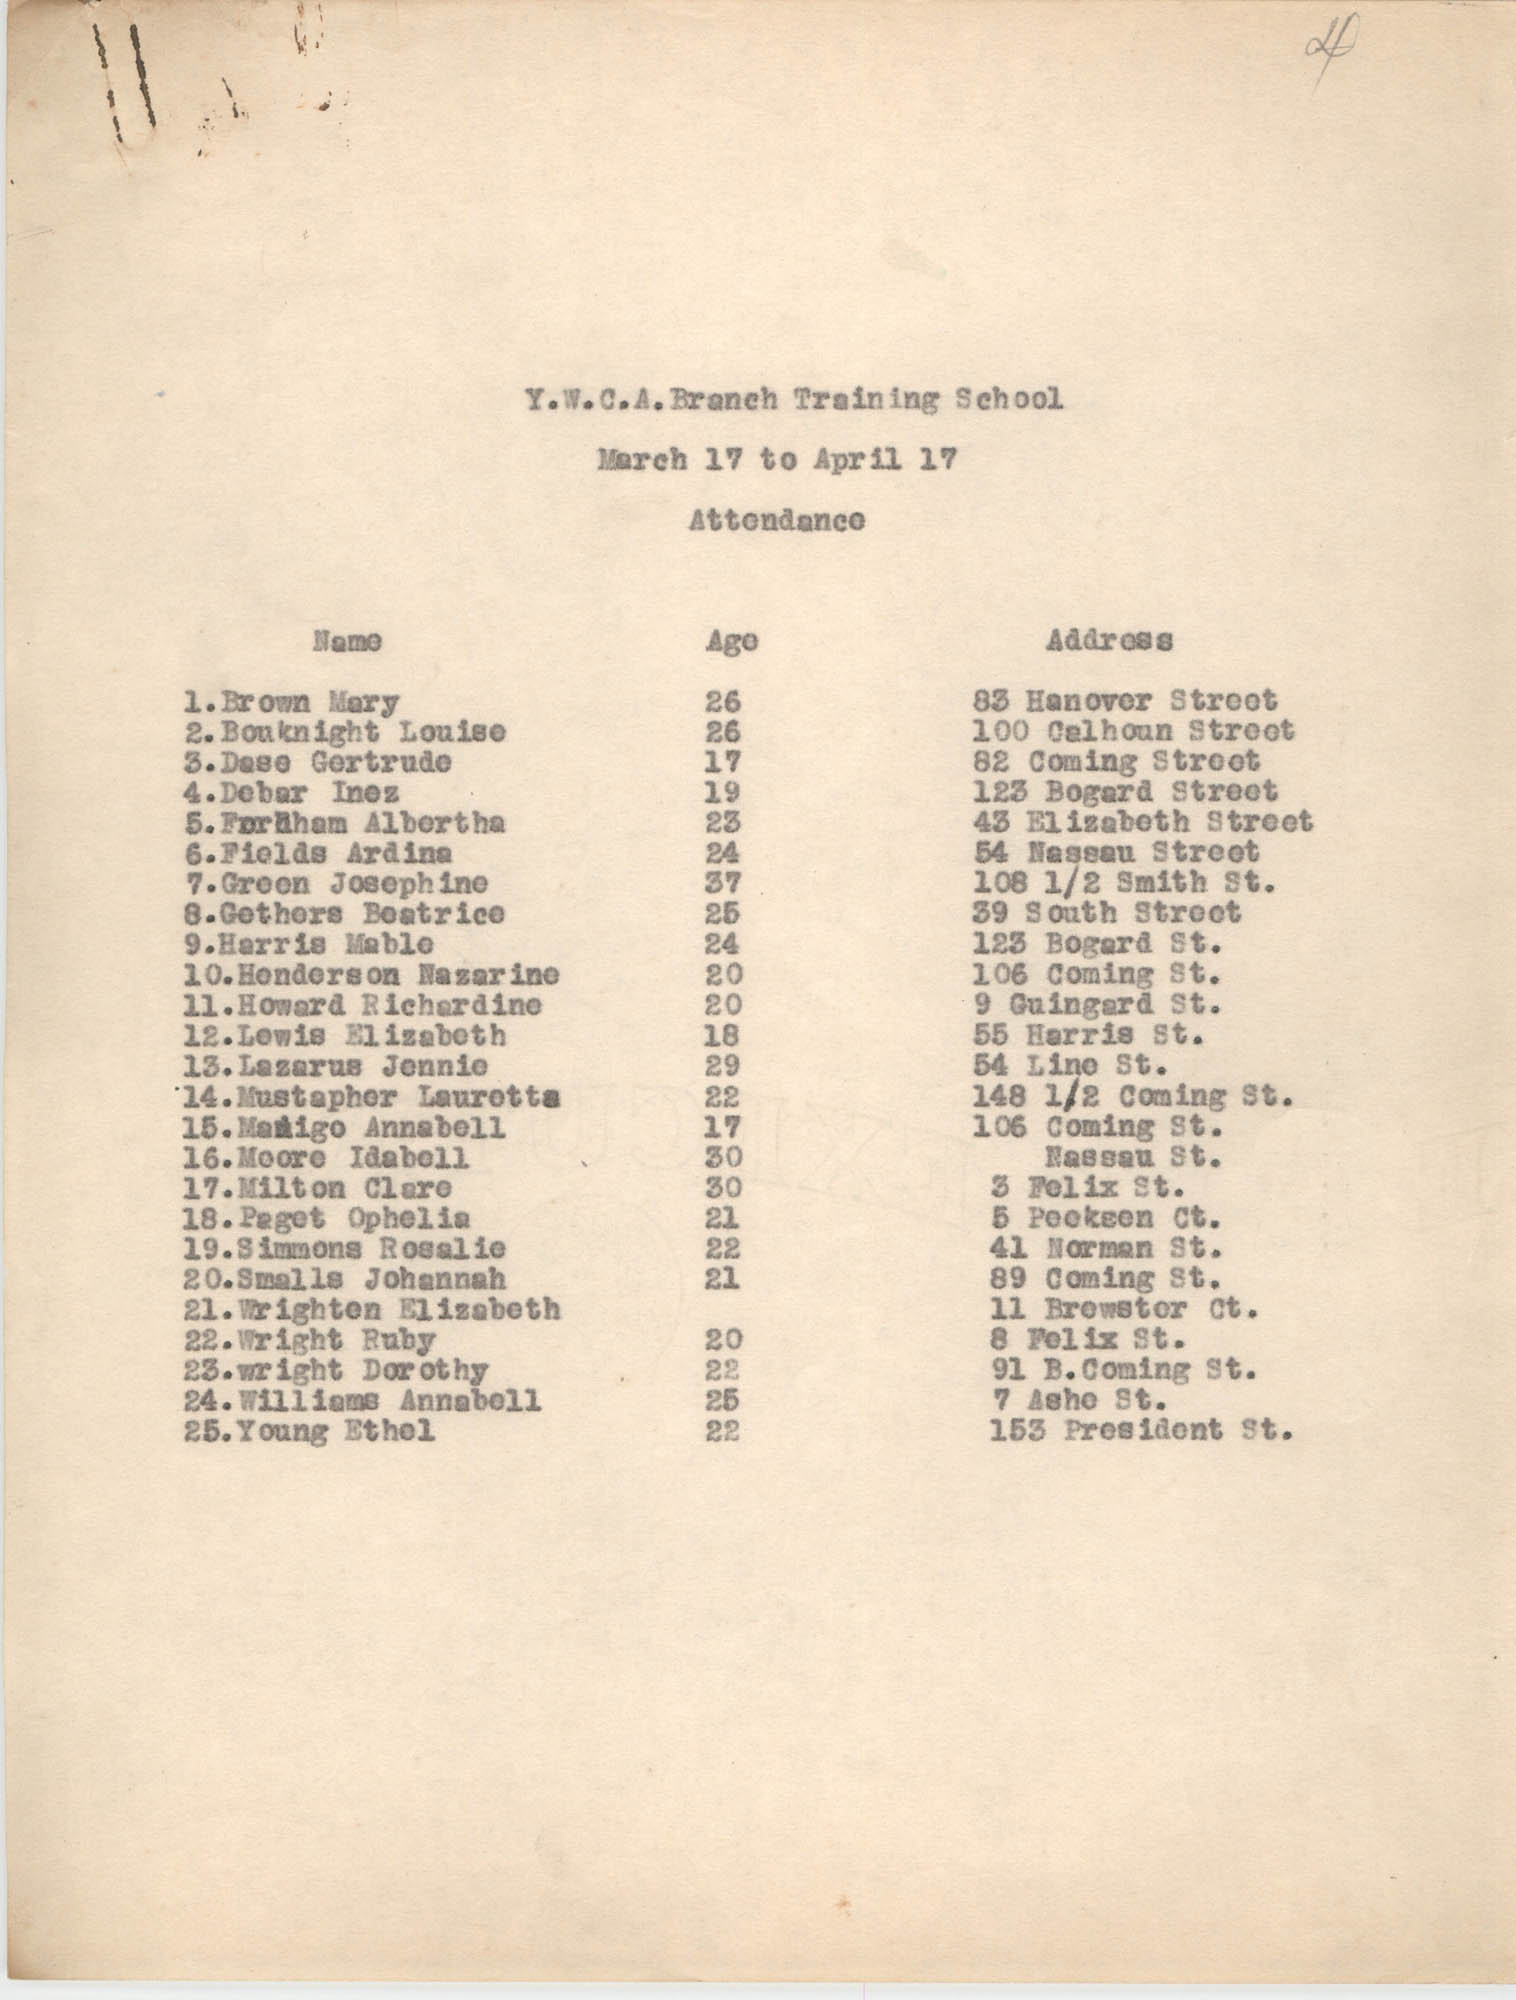 Monthly Report for the Coming Street Y.W.C.A., March 1939, Branch Training School Attendance